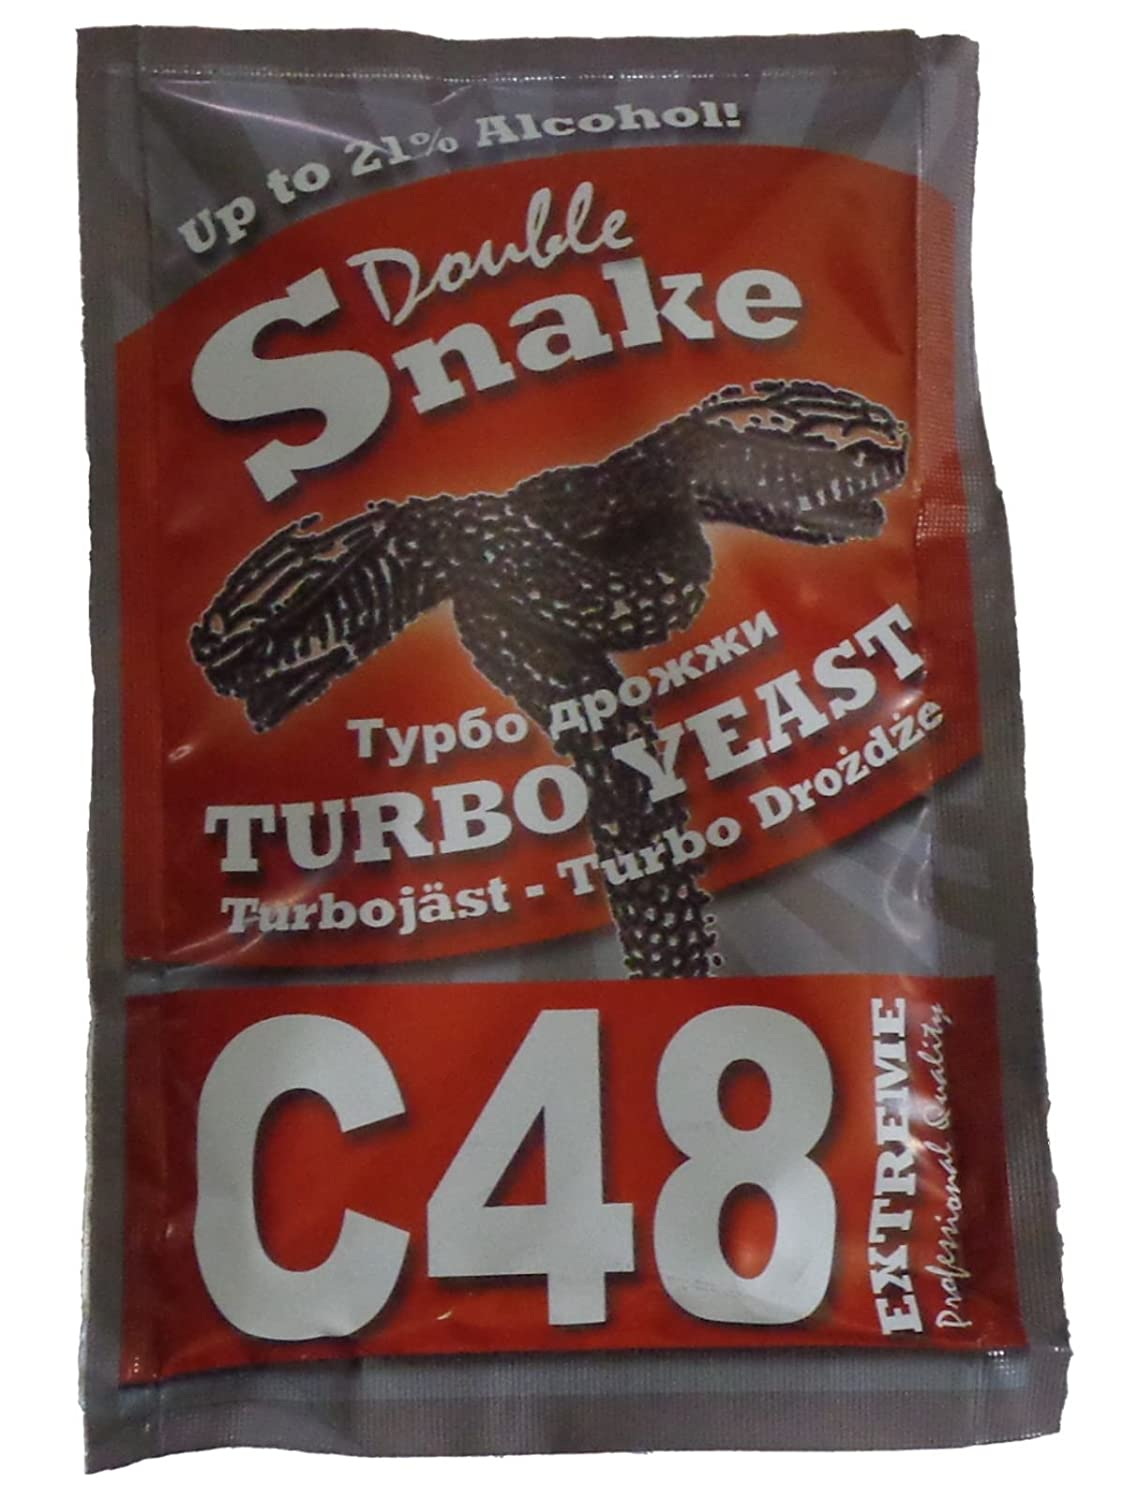 Amazon.com: Double Snake C48 Turbo Yeast 25L 14%-21% ABV Homebrew Vodka Wash Moonshine: Kitchen & Dining